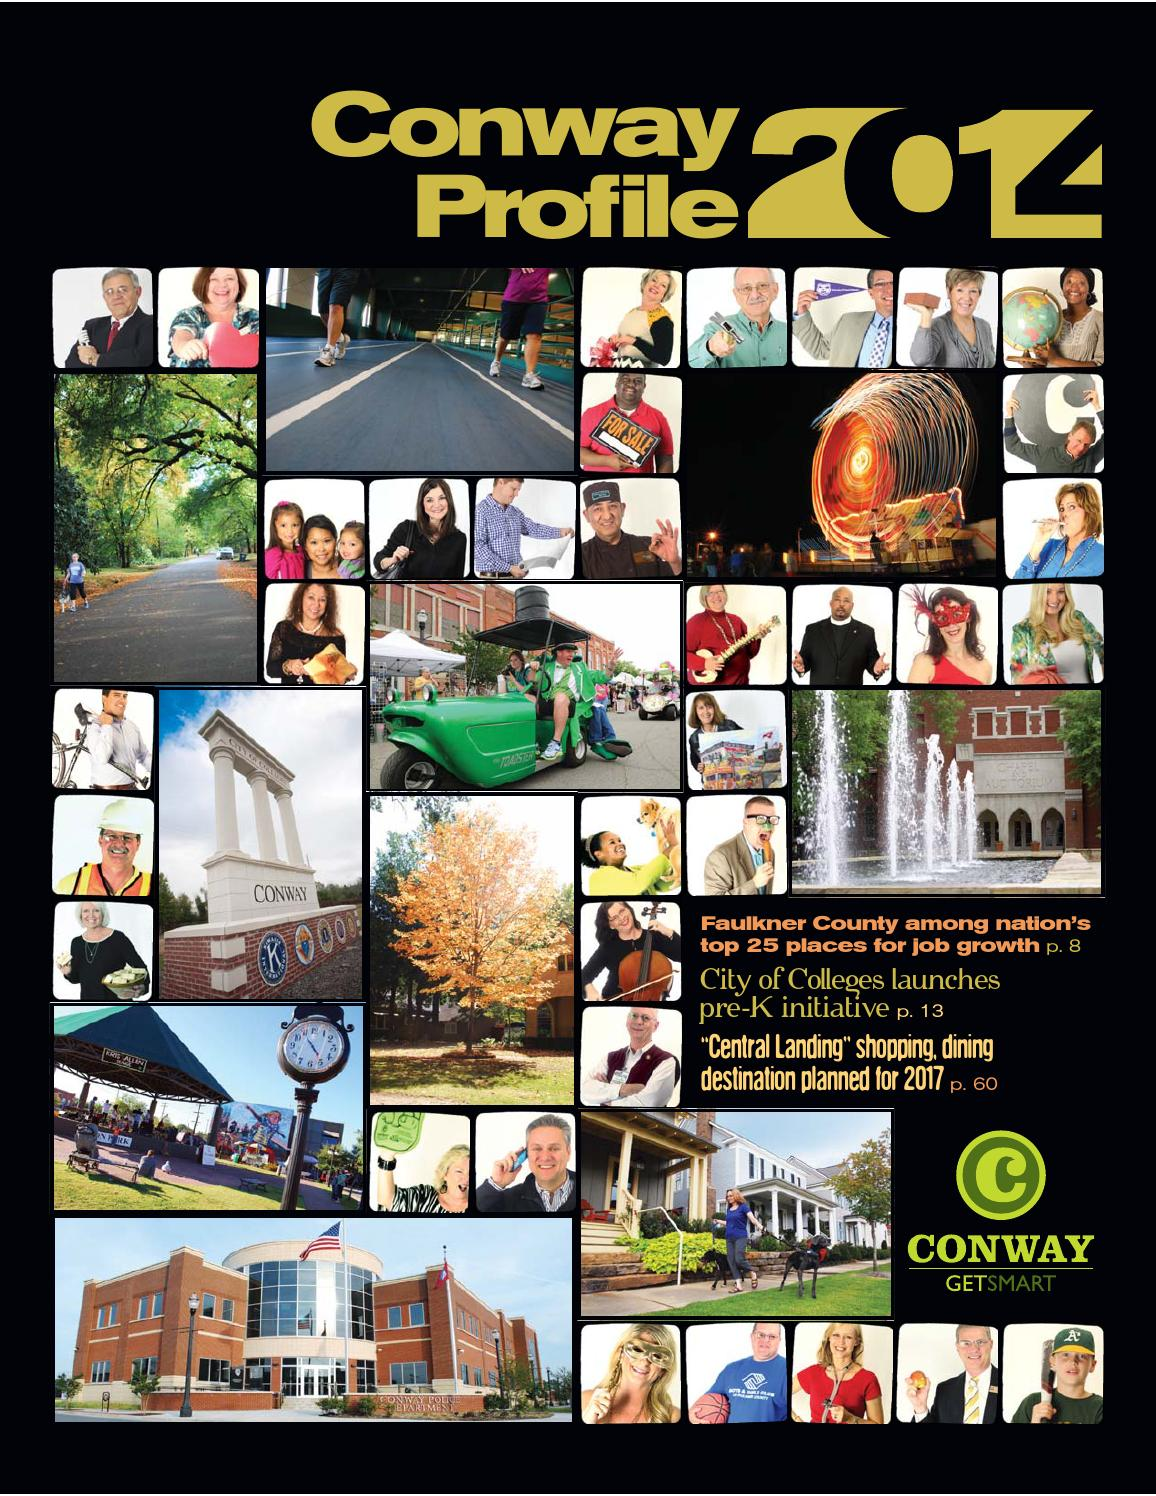 conway profile community profile resource guide by conway conway profile 2014 community profile resource guide by conway area chamber of commerce issuu